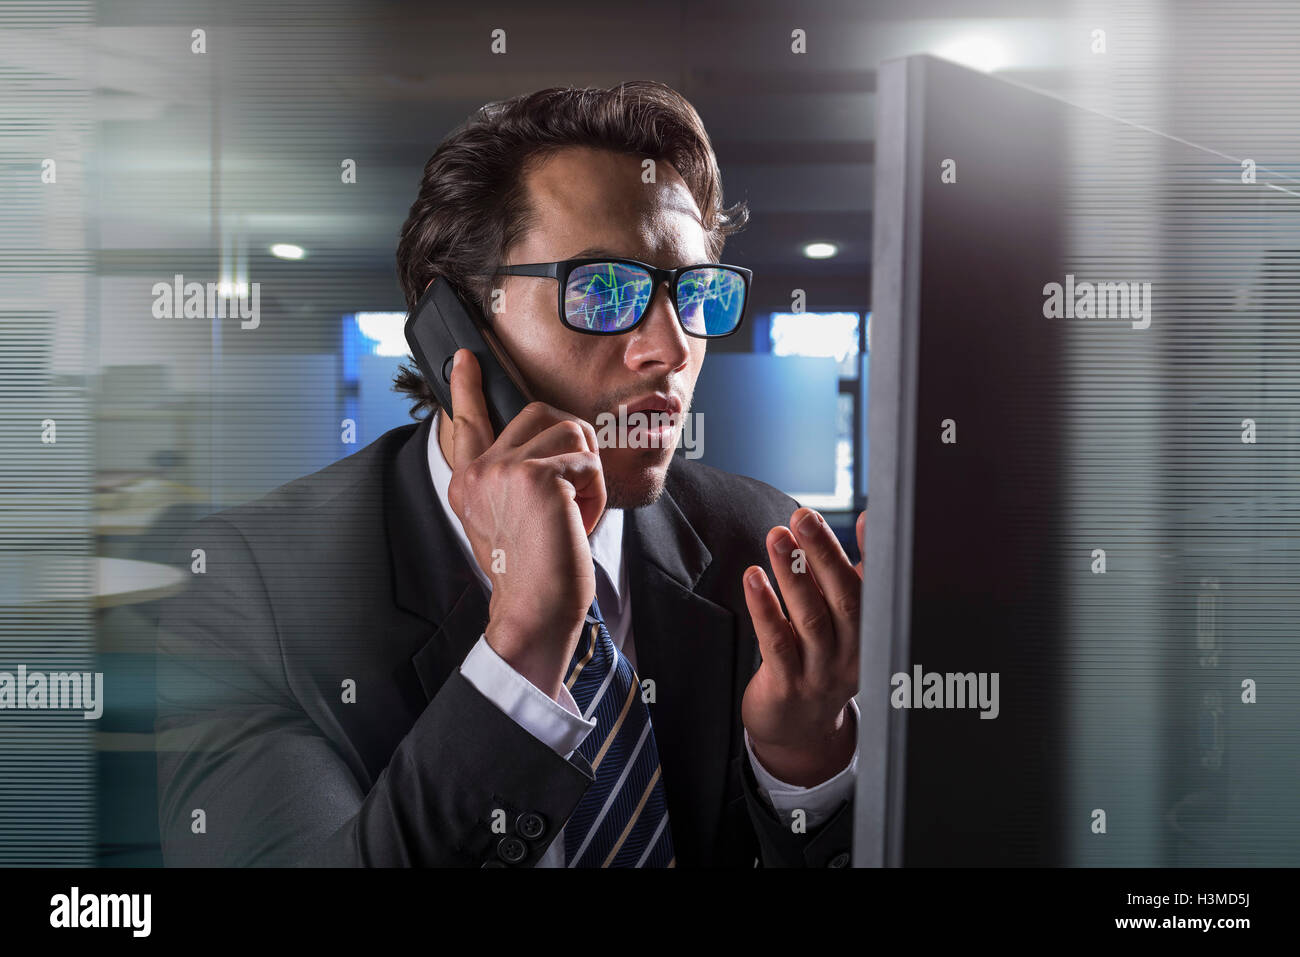 Composite image of businessman on phone at computer screen with graphical data reflected in glasses - Stock Image